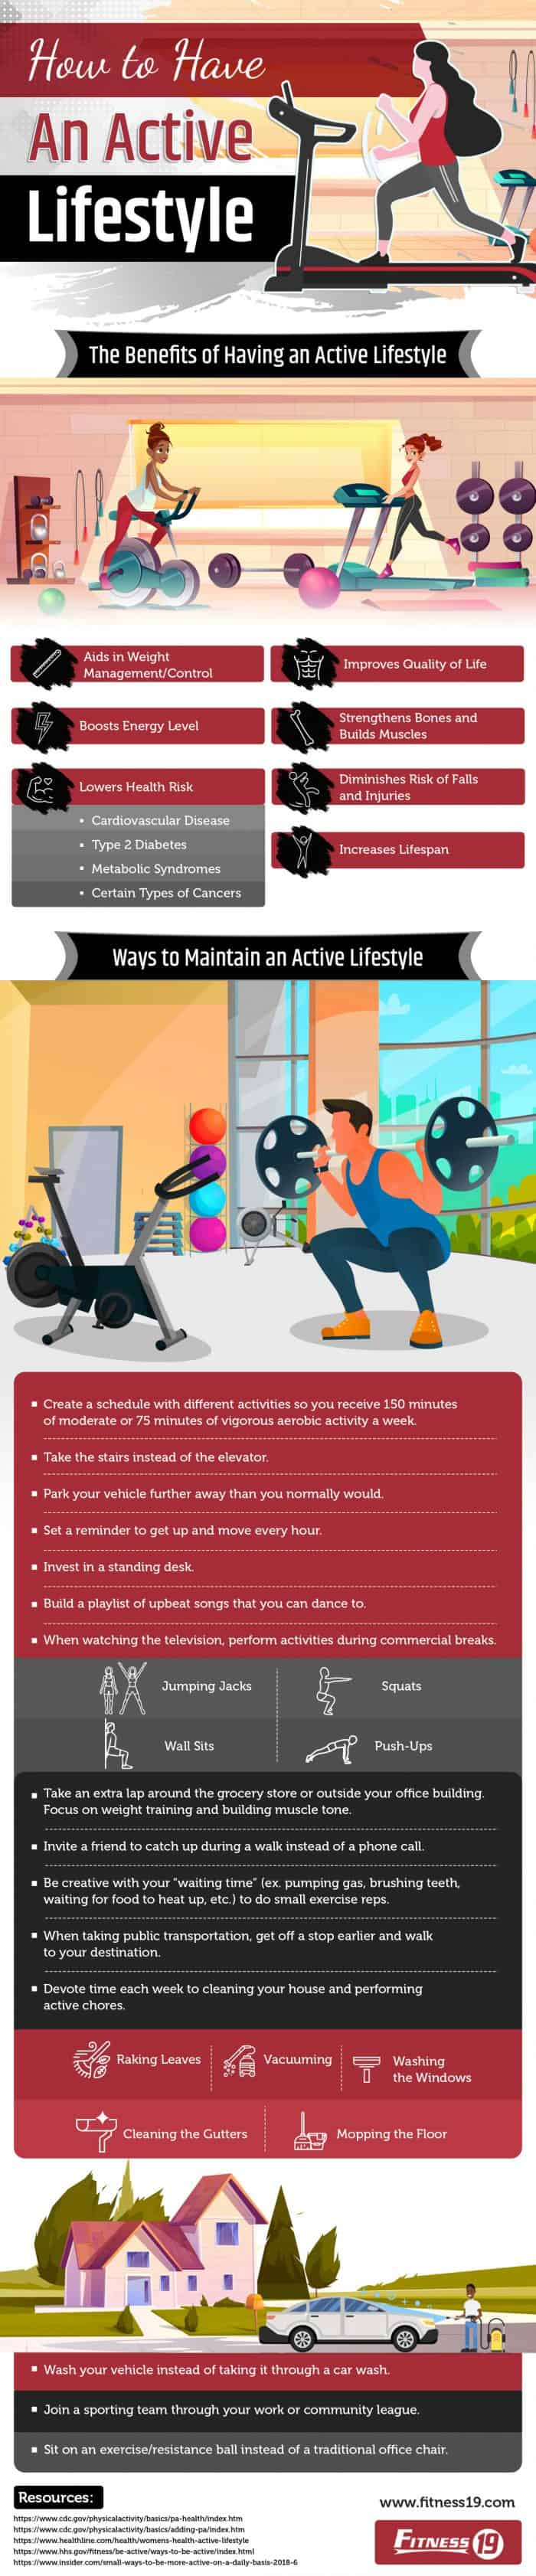 How to achieve an active lifestyle